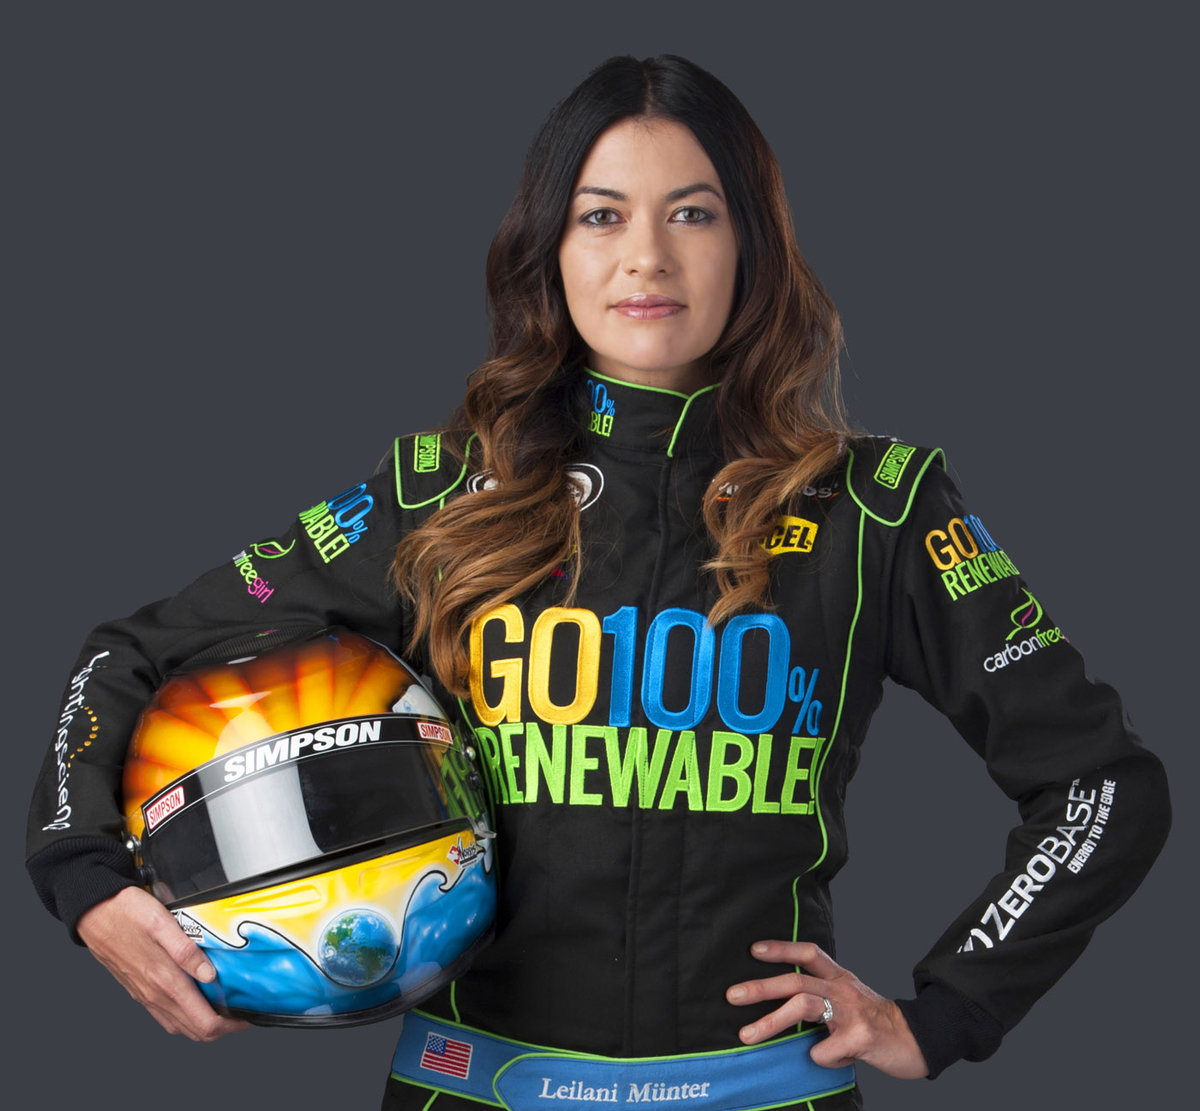 Women Race Car Drivers And Series